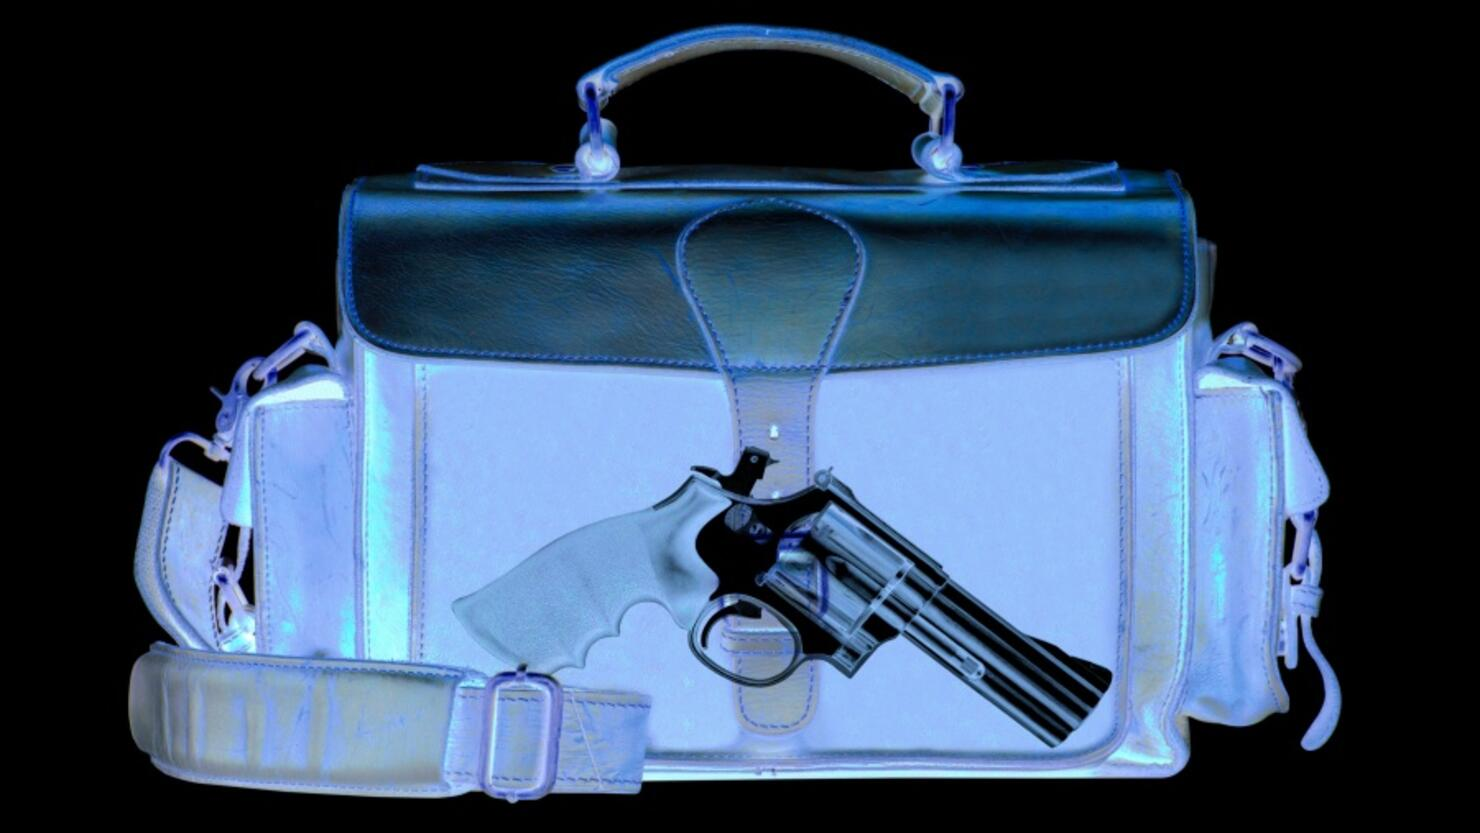 Xray scan detects weapon in criminals briefcase